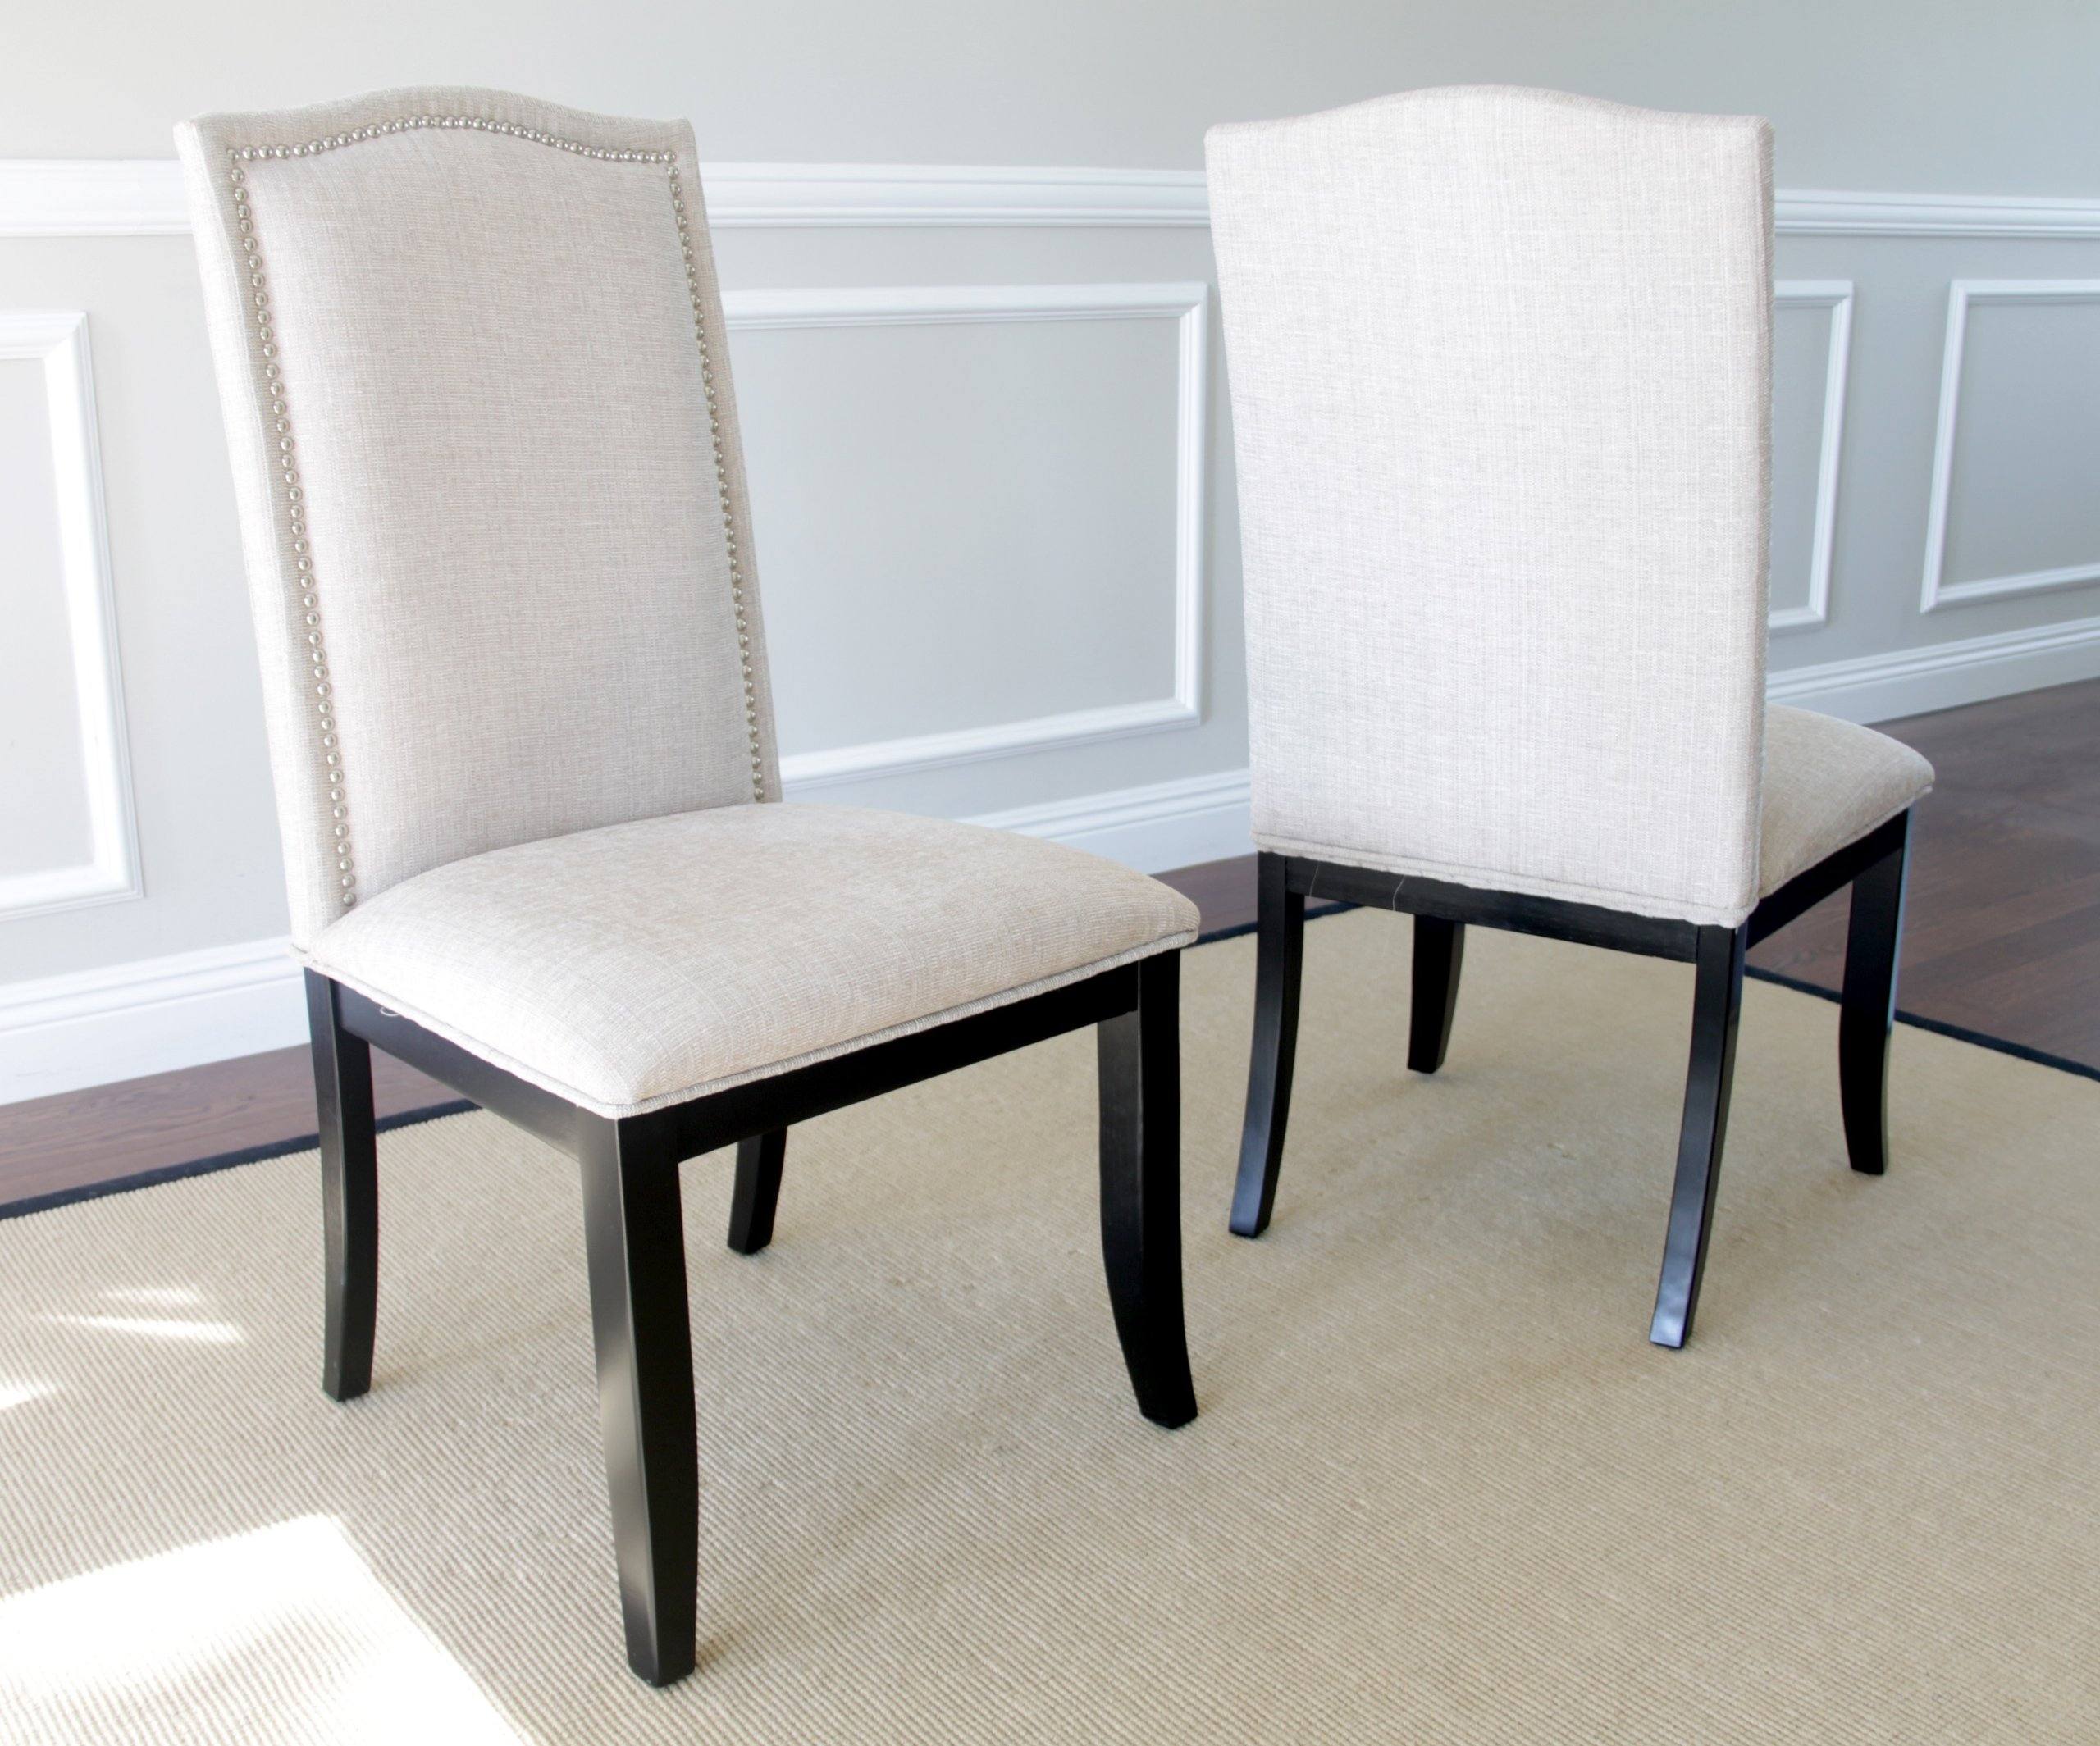 Incroyable Set Of 2 Upholstered Beige Fabric Dining Chairs With Nailhead Trim